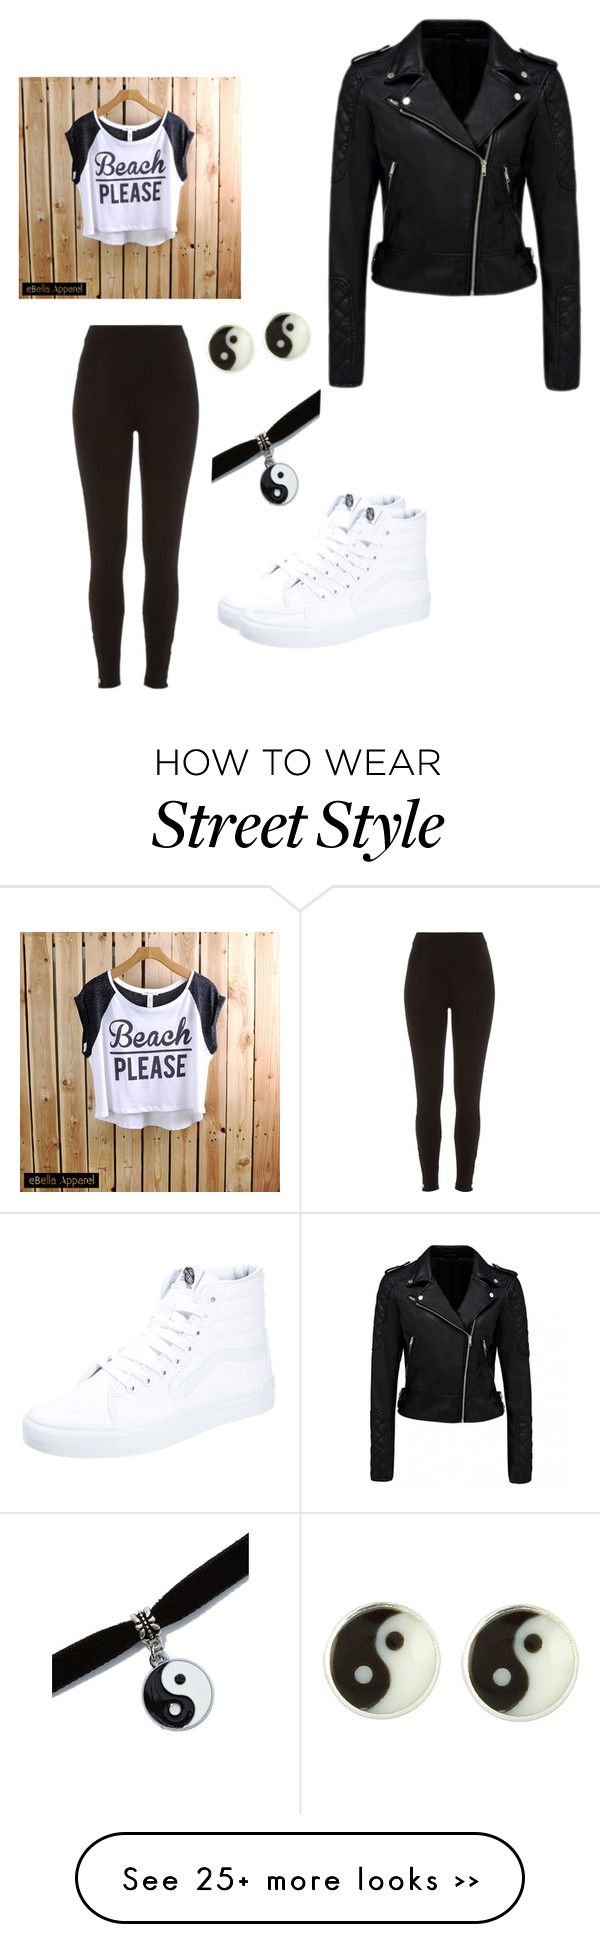 """School outfit #1"" by zryeal on Polyvore"